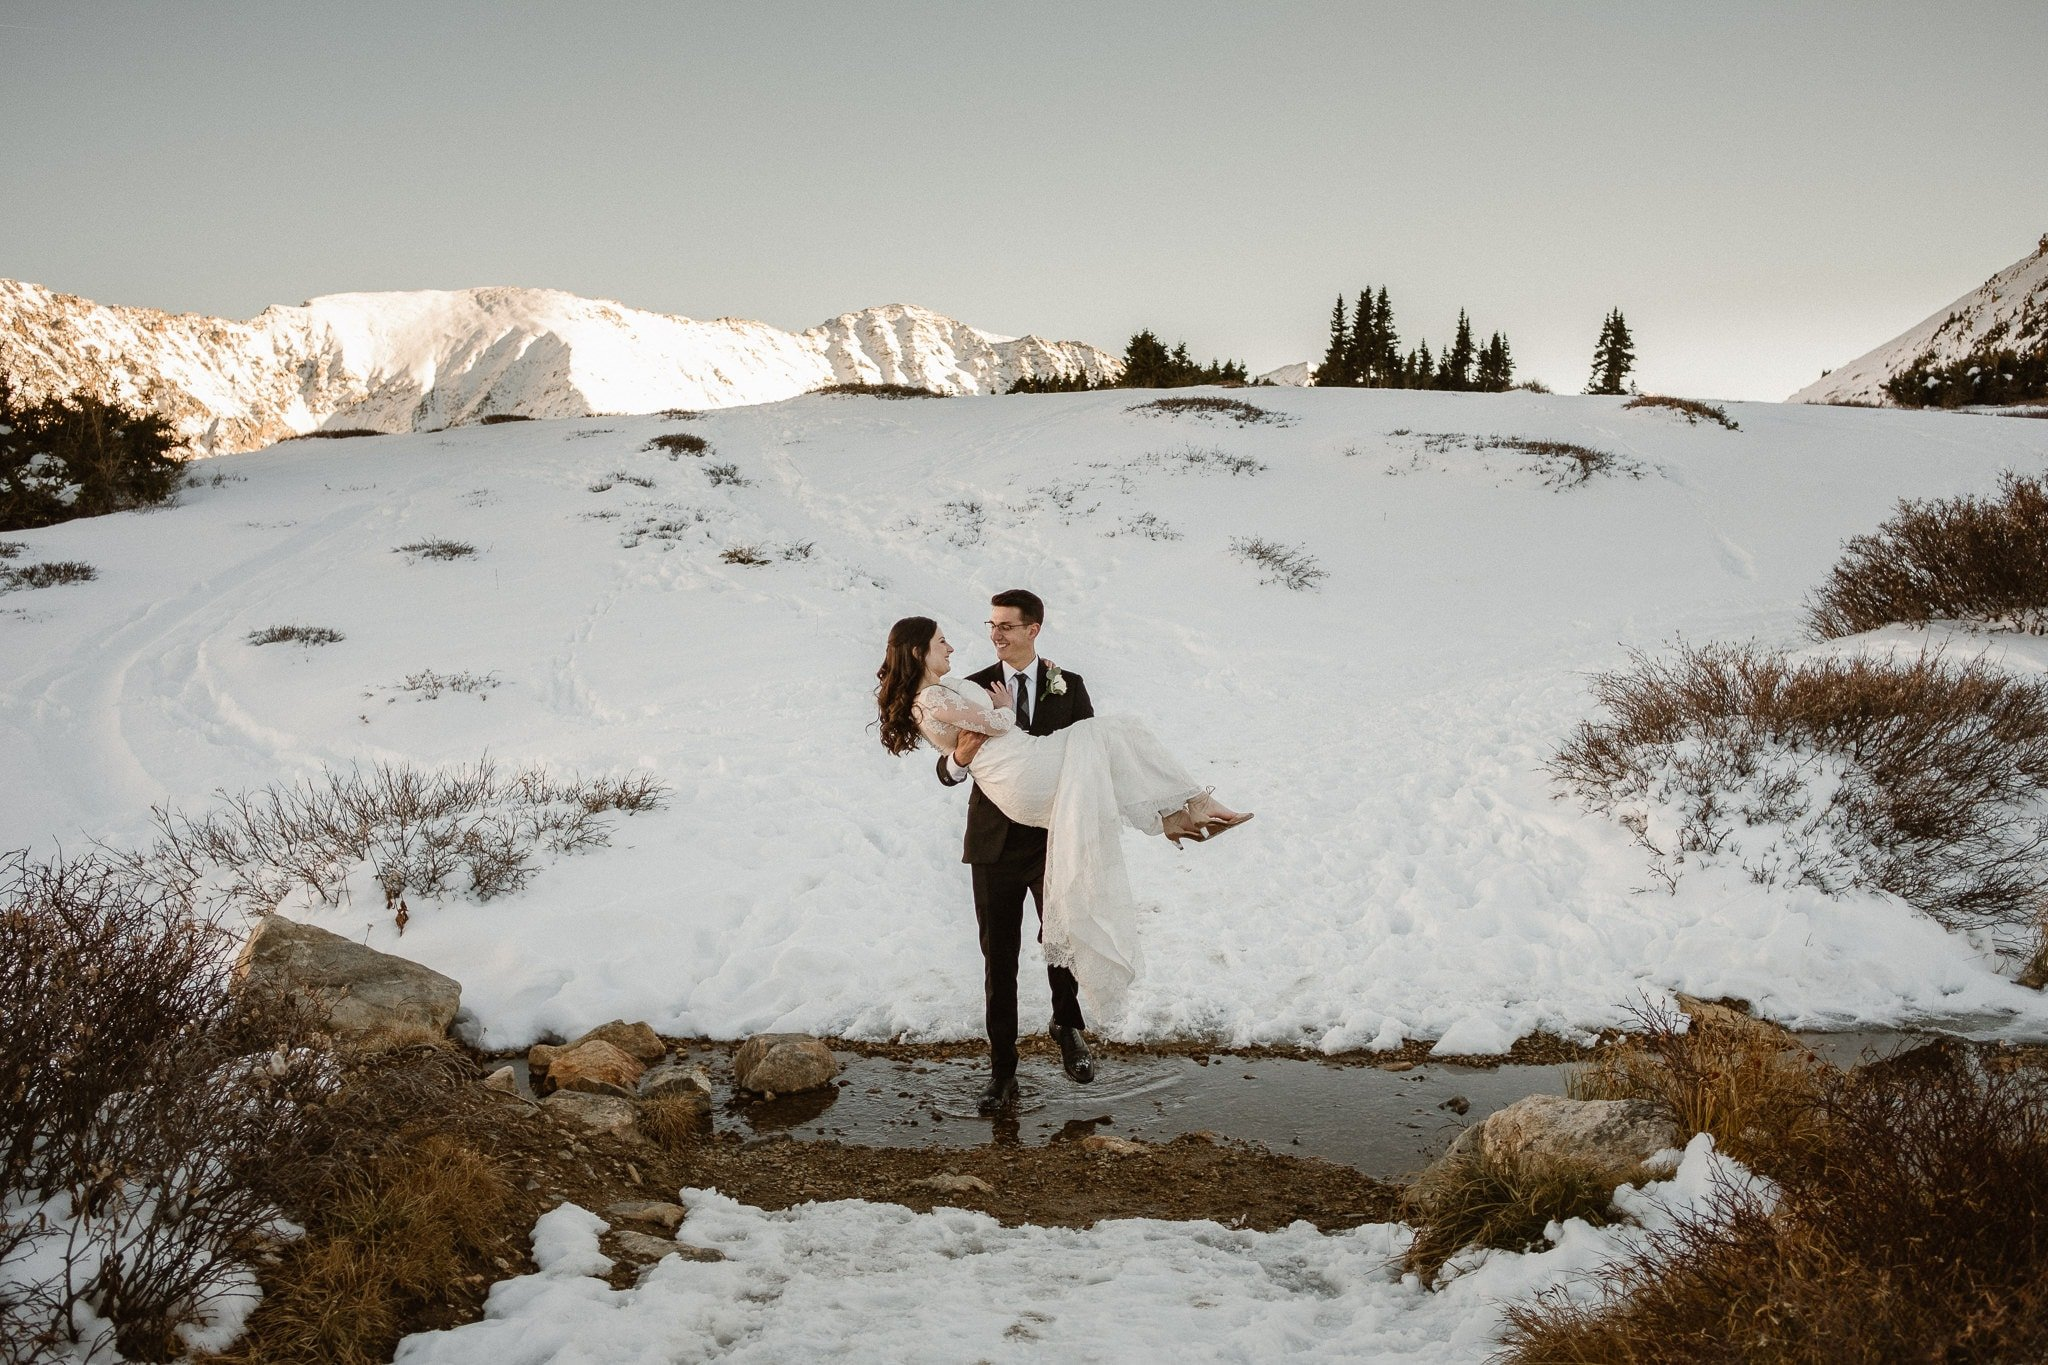 Lauren + Josh's Colorado Winter Elopement